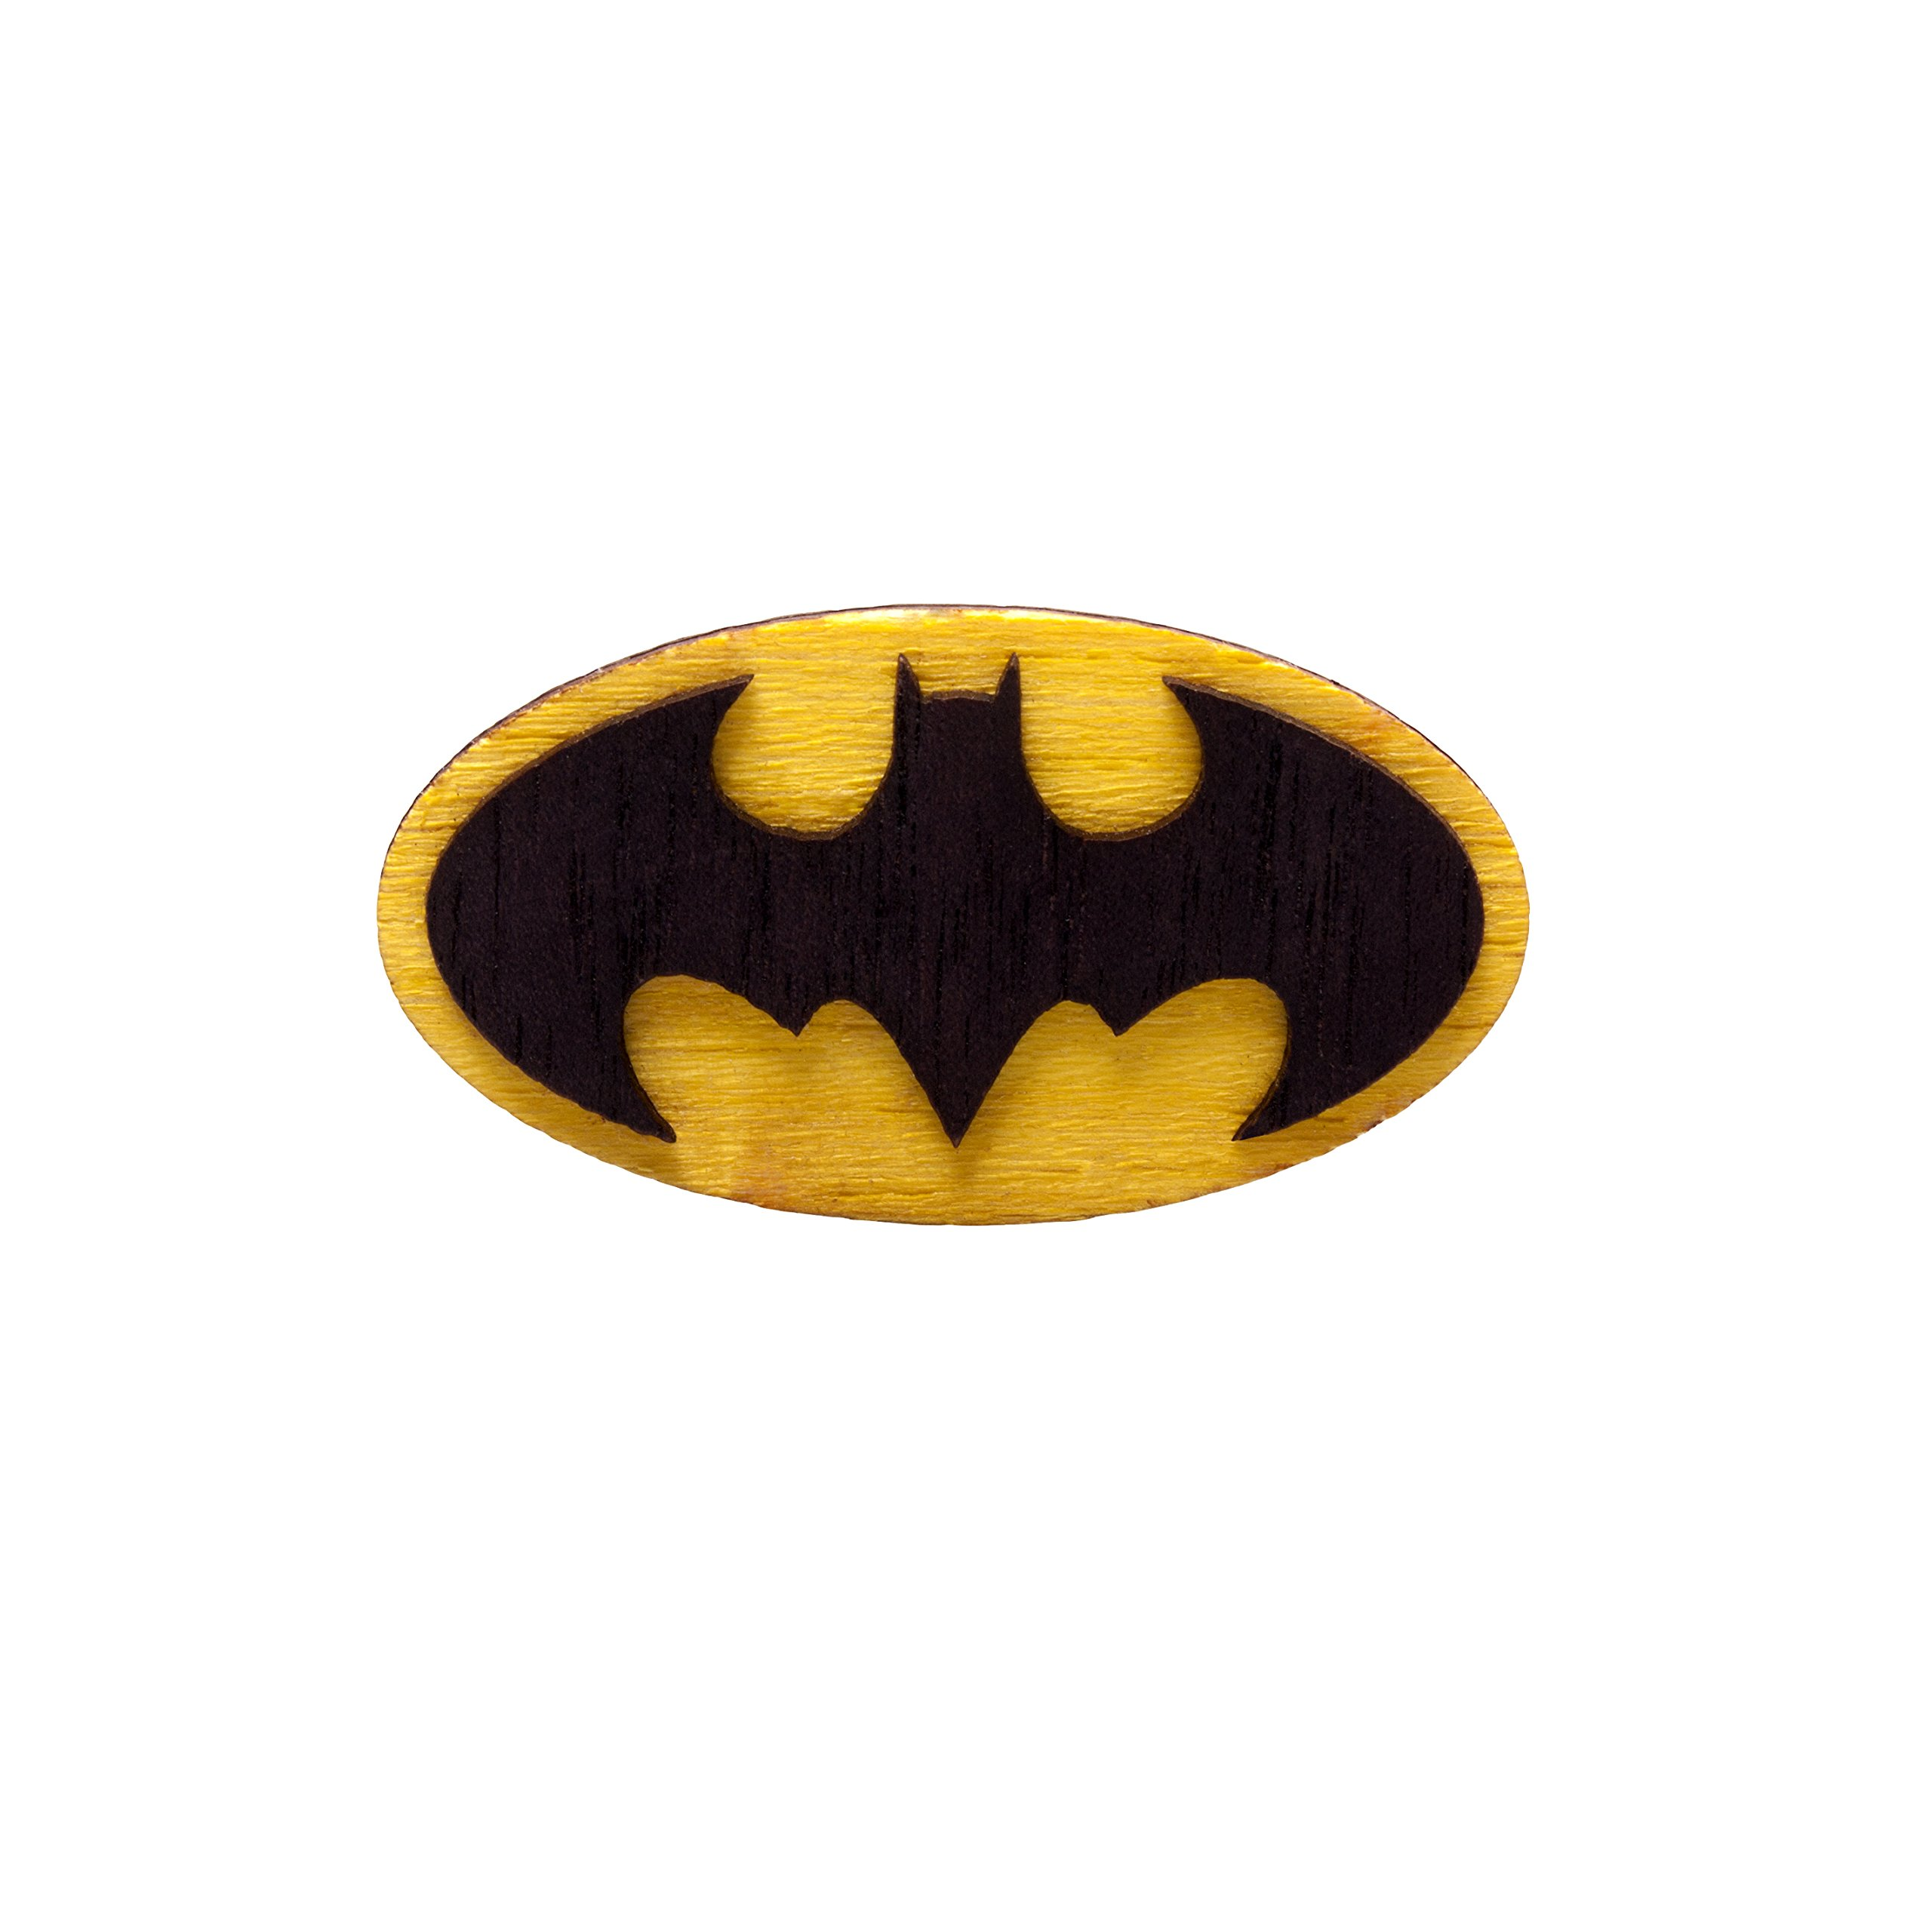 Waf-Waf Batman Logo Yellow and Black Lapel Pin DC Comics Wood Style Brooch for Suit, Shirt, Cap or Backpack